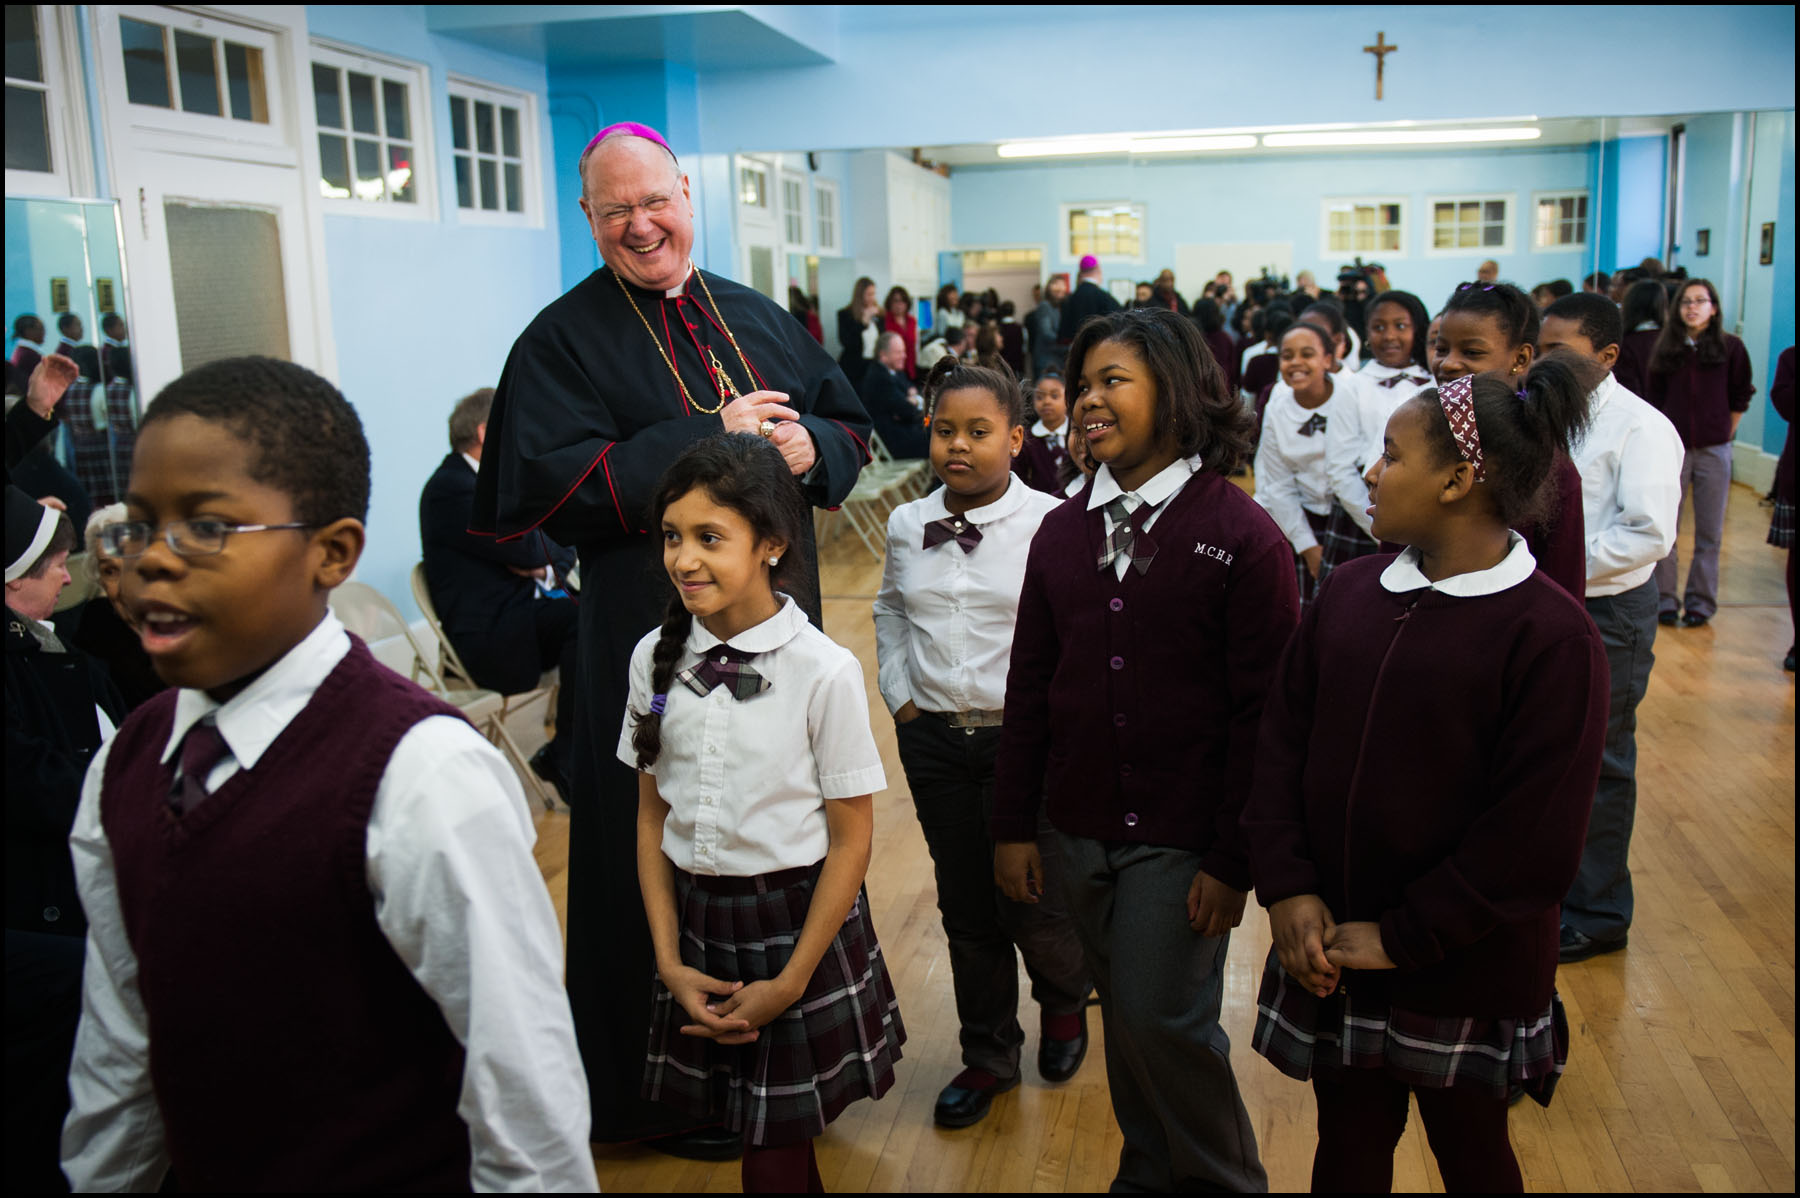 Archbishop Timothy Dolan is overjoyed with the children while taking a tour of the Mount Carmel- Holy Rosary school.